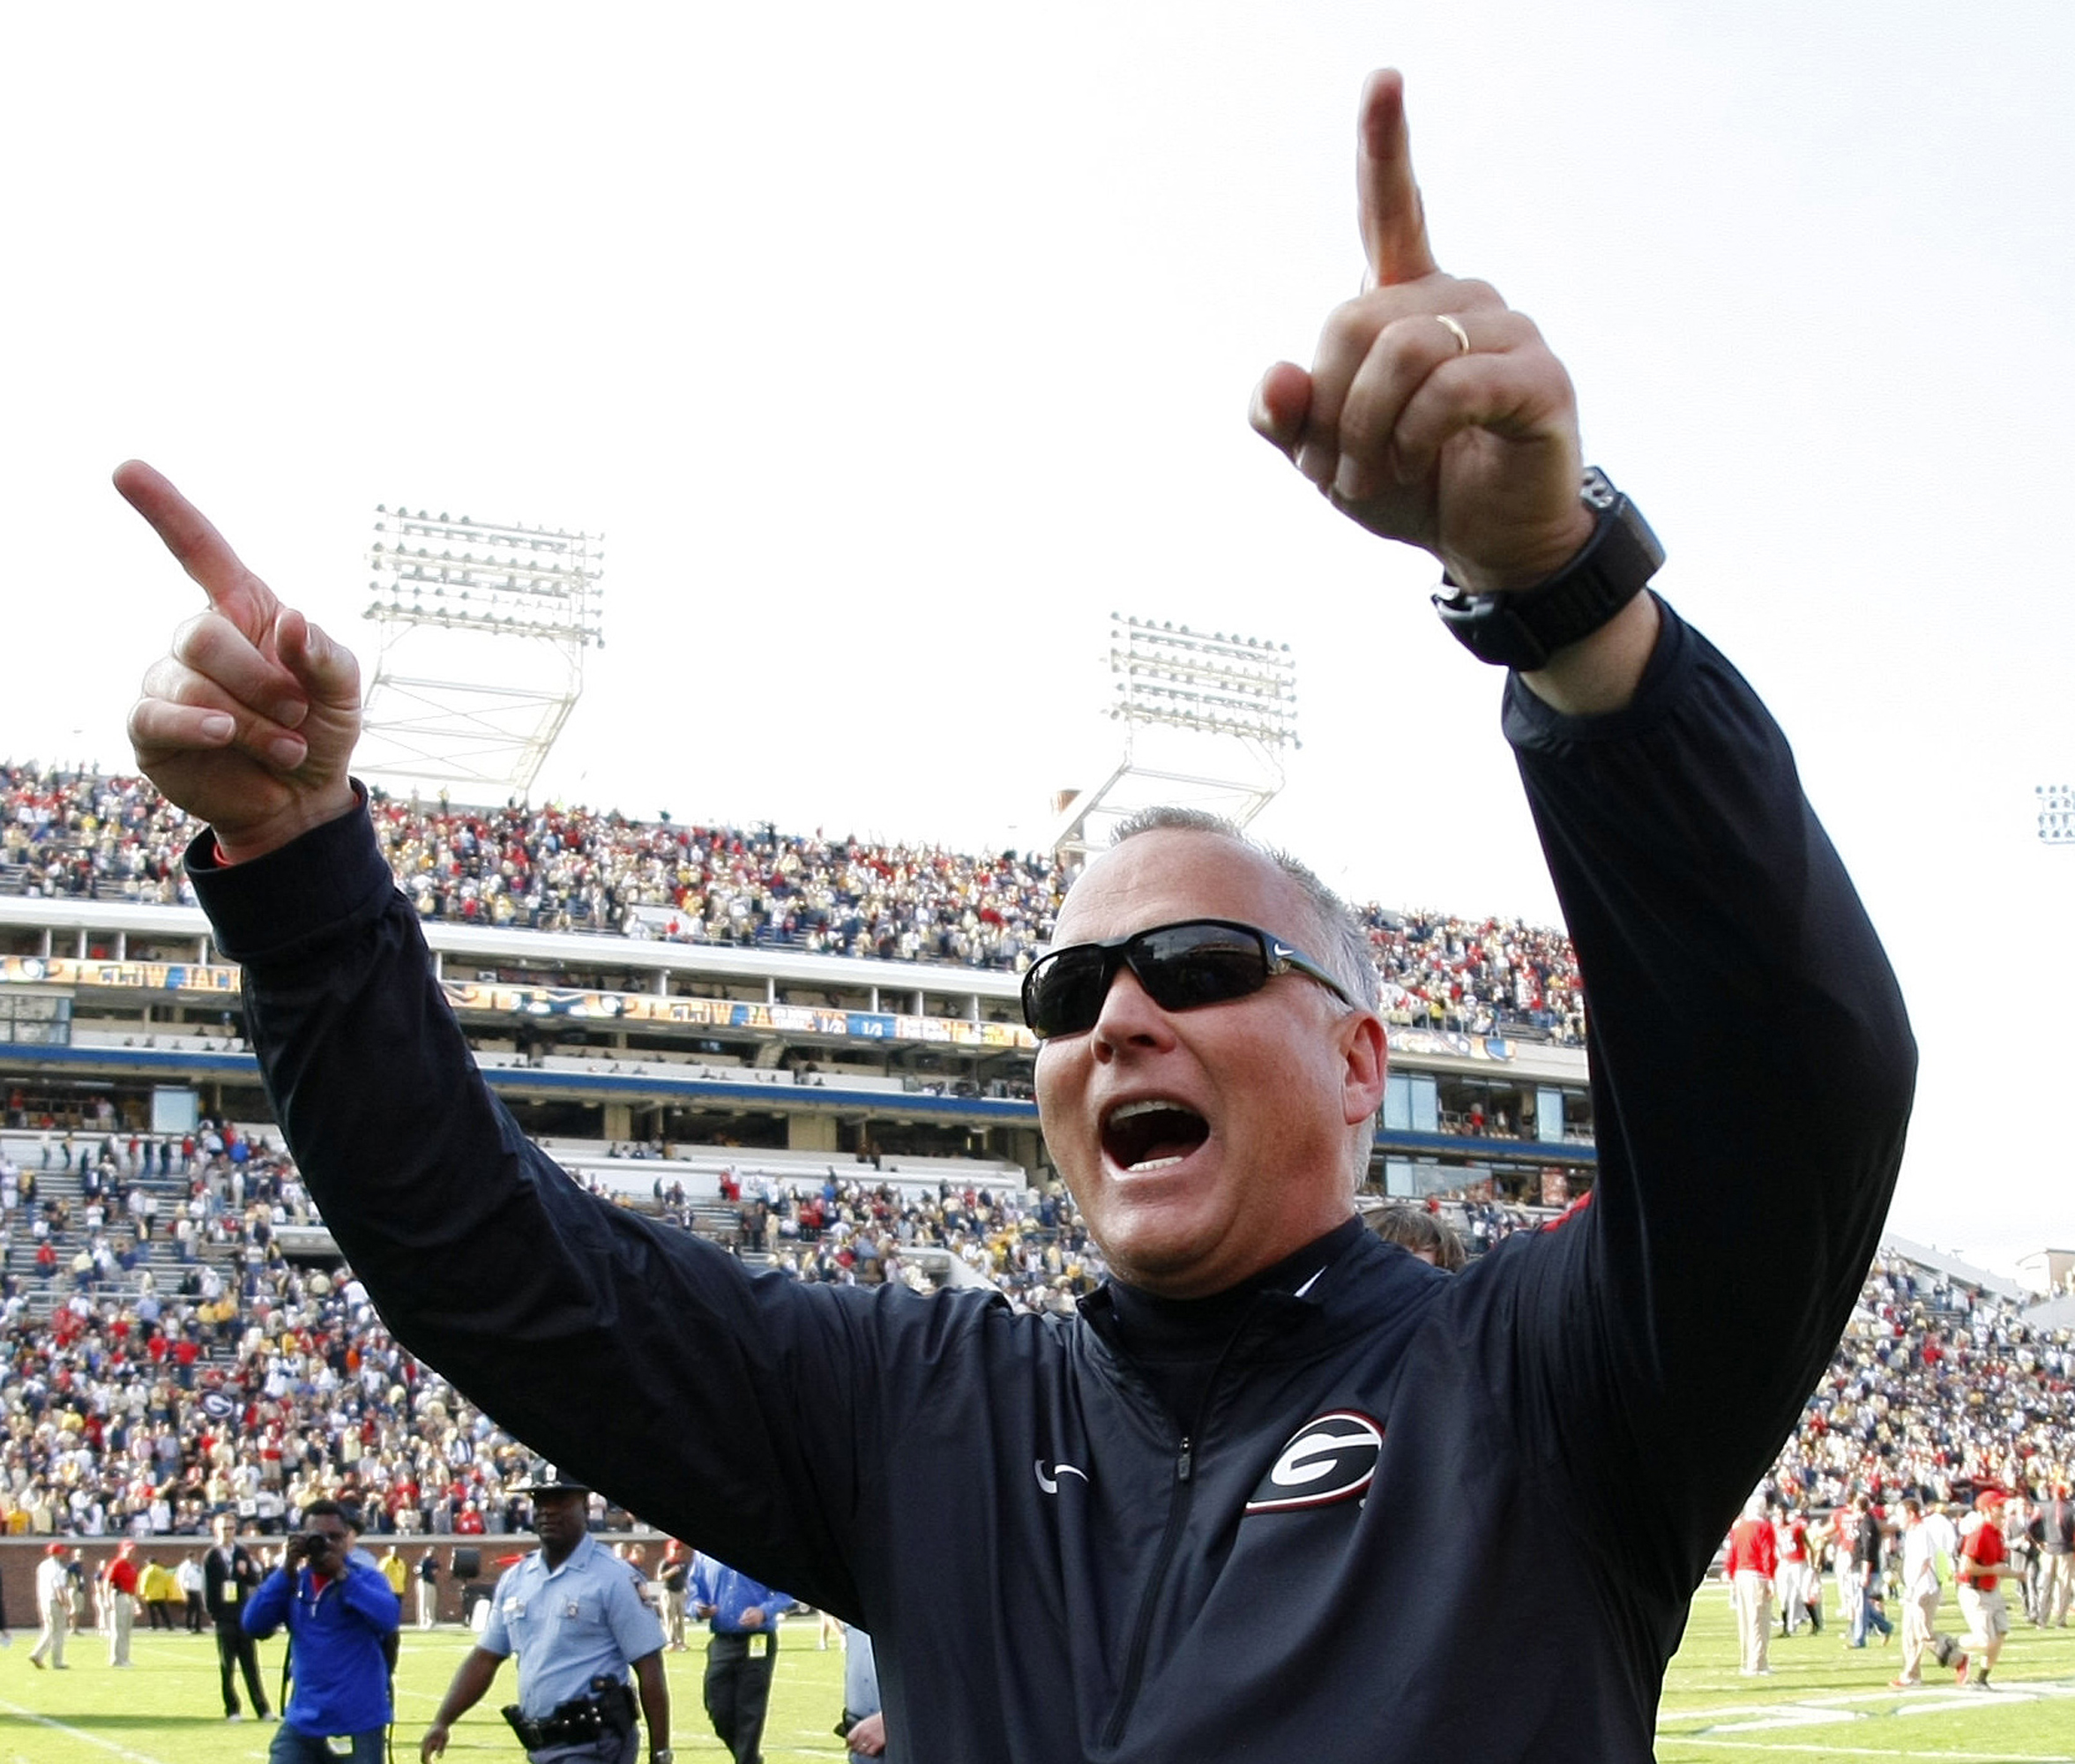 FILE - In this Nov. 28, 2015, file photo, Georgia head coach Mark Richt celebrates as he walks off the field after his team defeated Georgia Tech 13-7 in an NCAA college football game in Atlanta, Ga. Richt is stepping down after 15 seasons in what is bein